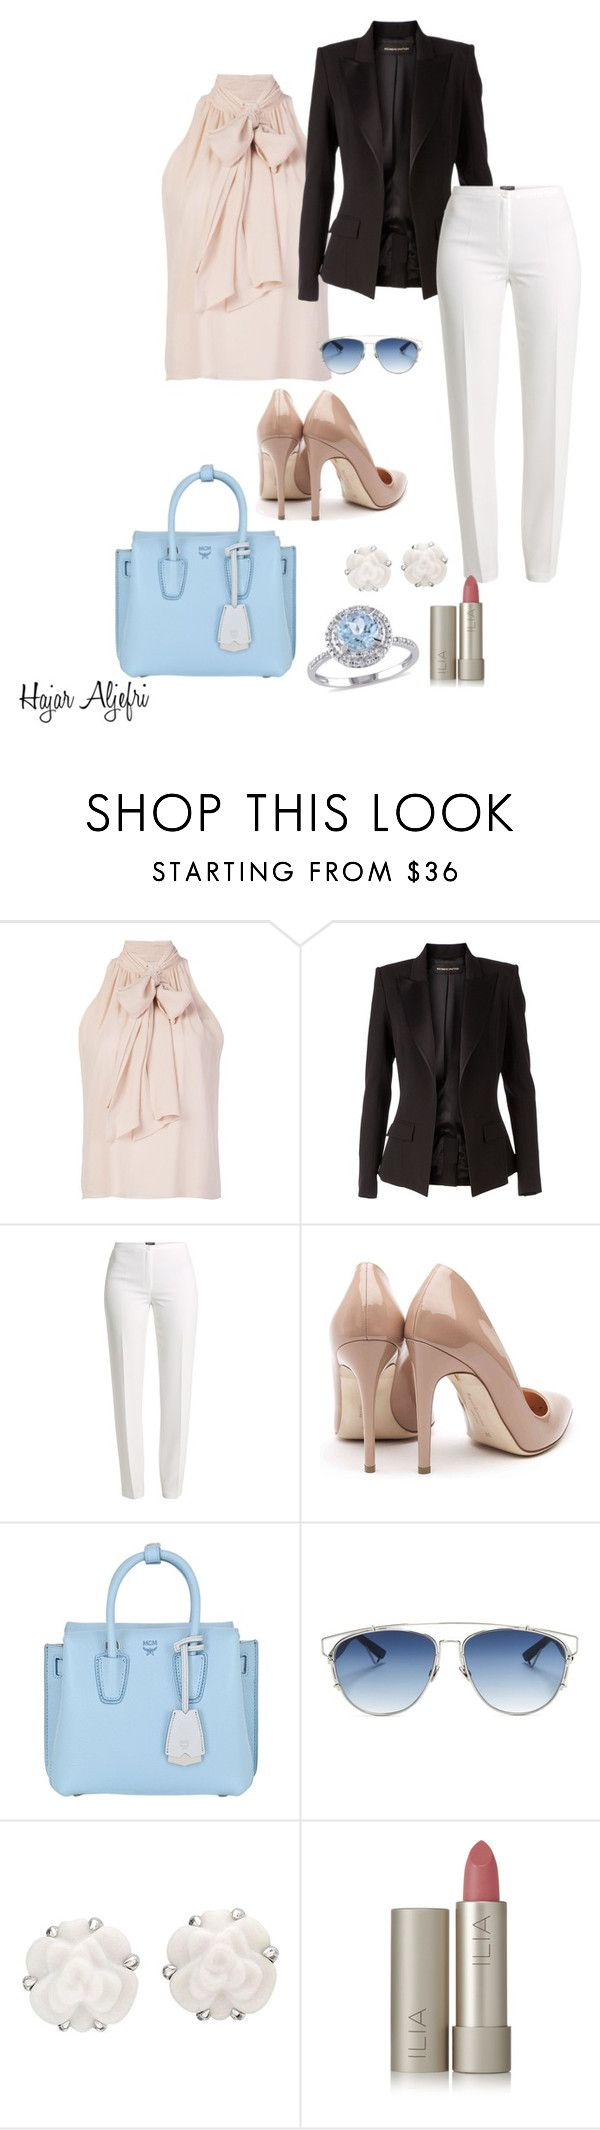 """""""Fashion"""" by hajar-111 on Polyvore featuring Alice + Olivia, Alexandre Vauthier, Basler, Rupert Sanderson, MCM, Christian Dior, Chanel, Ilia and Modern Bride"""